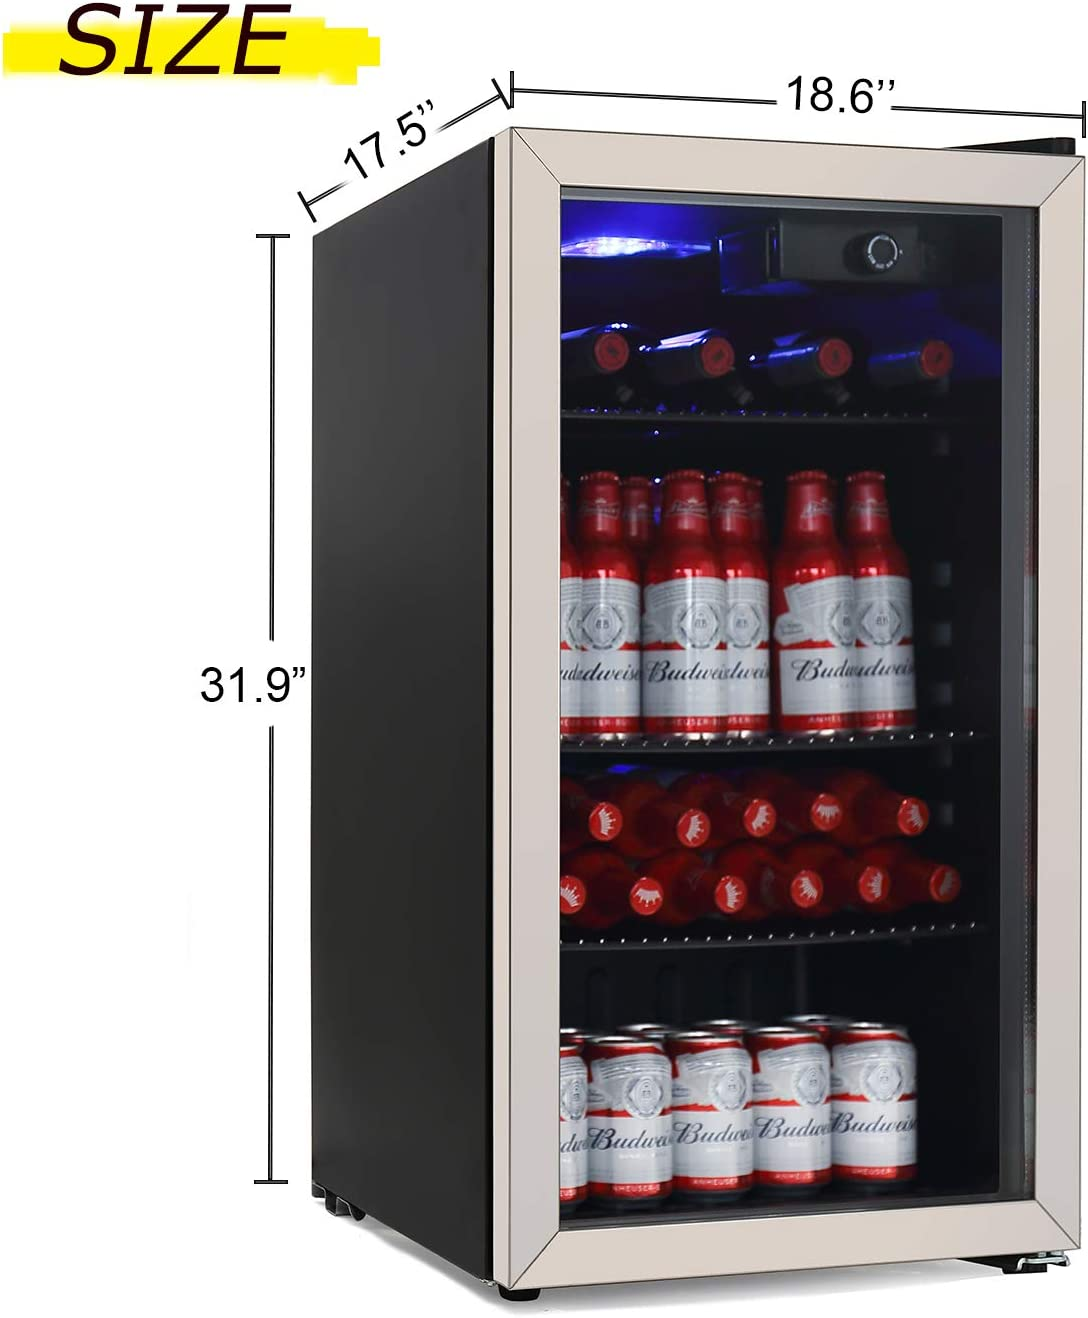 Office or Bar soda or Wine 90 Can or 26 Bottles Mini Fridge freestanding for Home Drink Freezer for Party OKADA Beverage Refrigerator or Wine Cooler with Glass Door for Beer